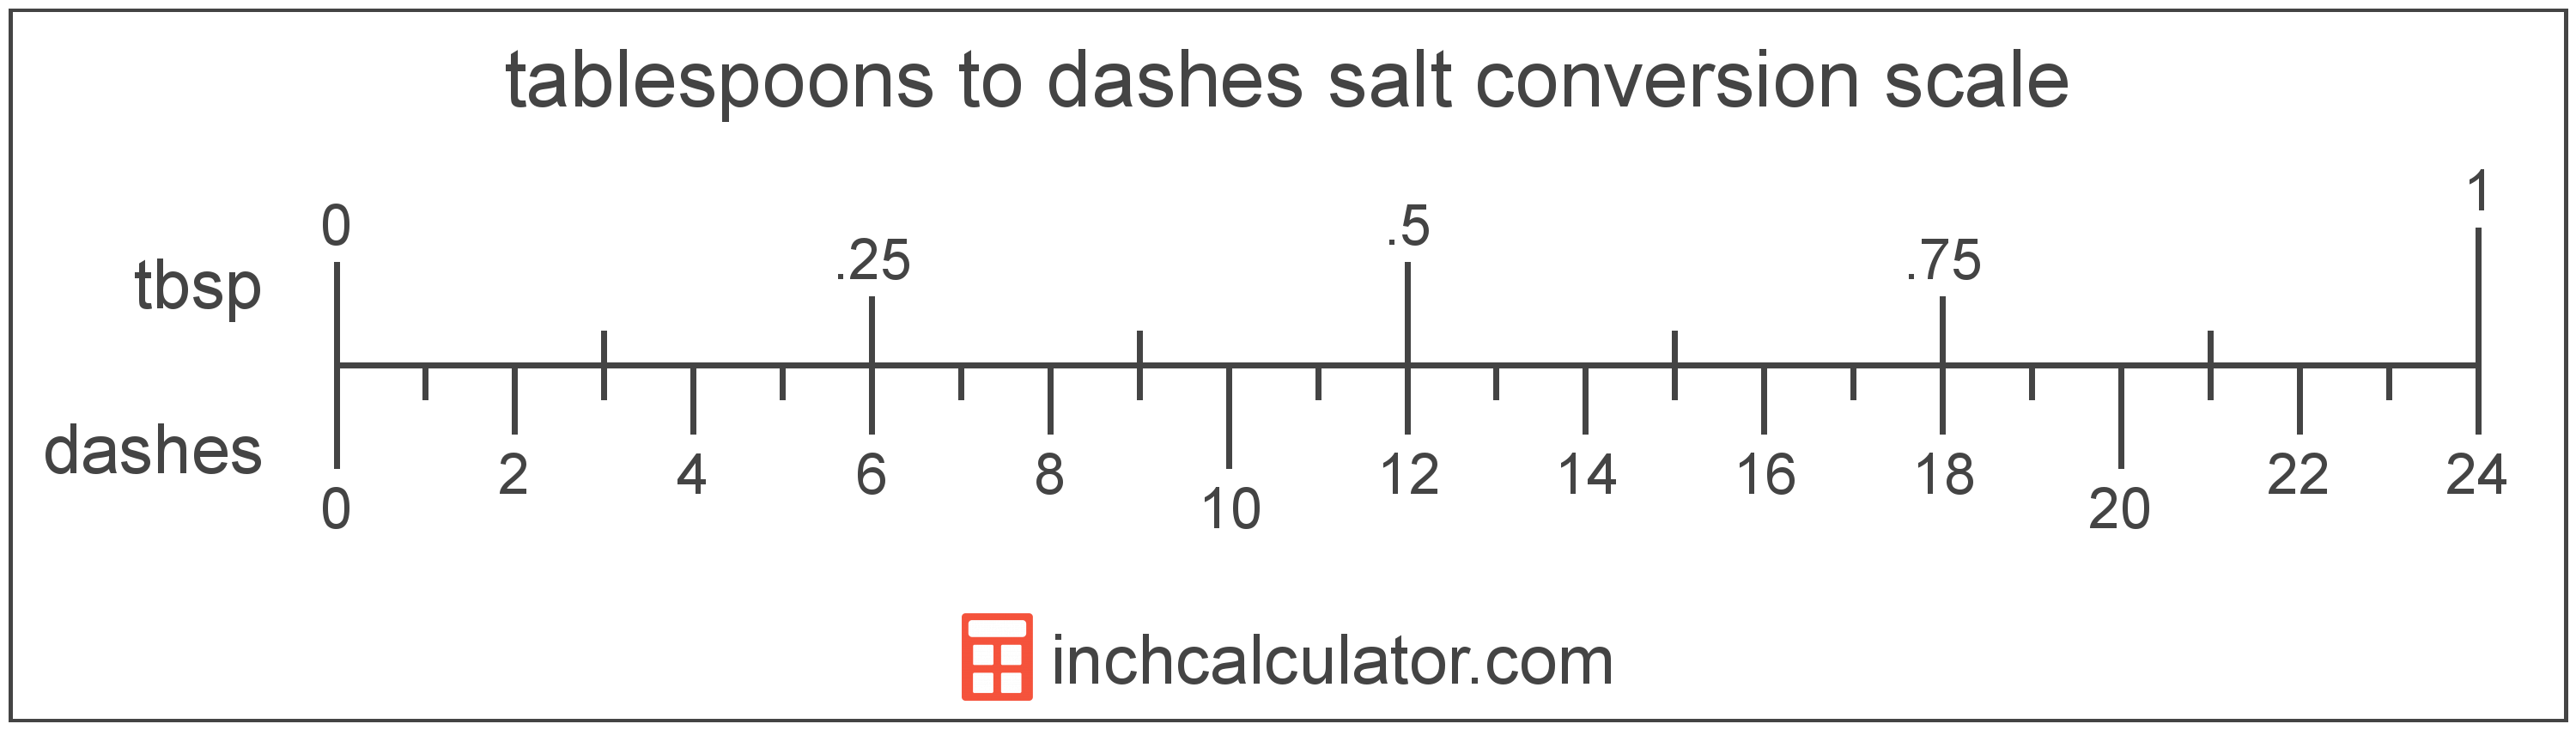 conversion scale showing tablespoons and equivalent dashes salt volume values